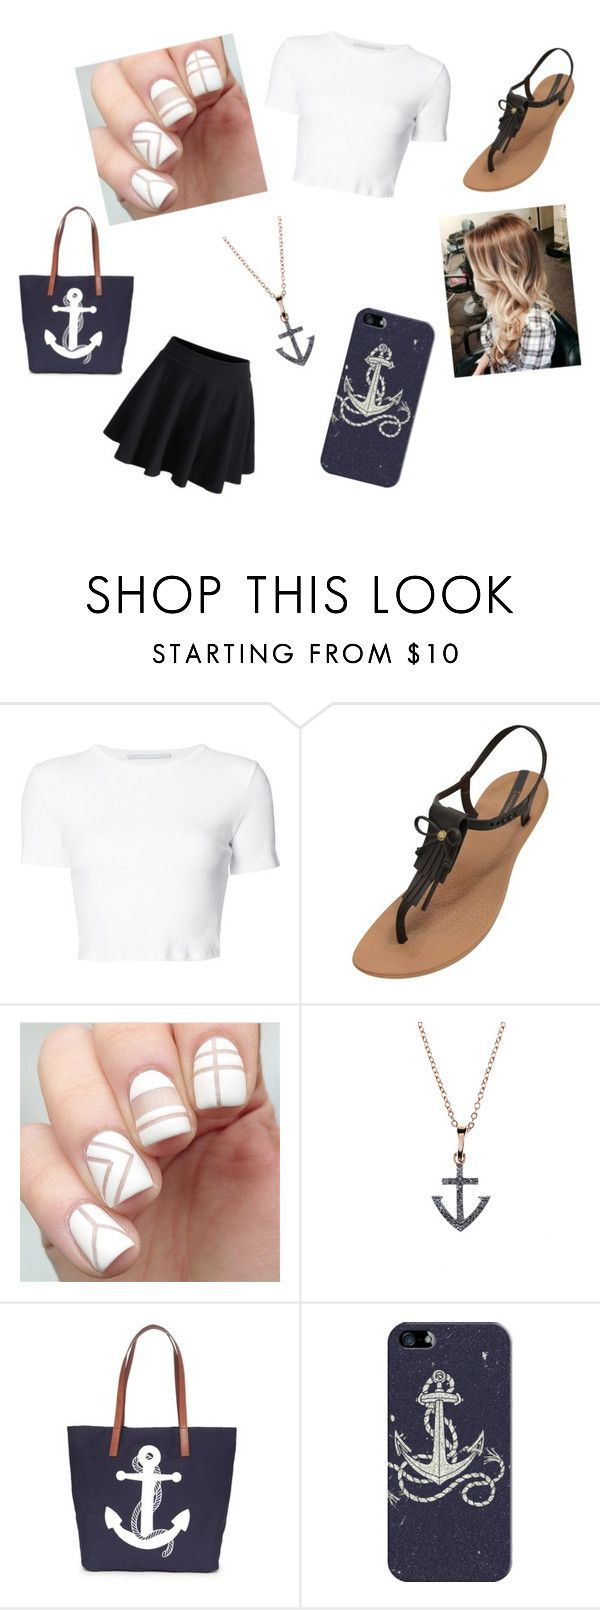 """Cute anchor outfit"" by oliviaivory ❤ liked on Polyvore featuring Rosetta Getty, IPANEMA, Crown & Ivy, Casetify and WithChic"